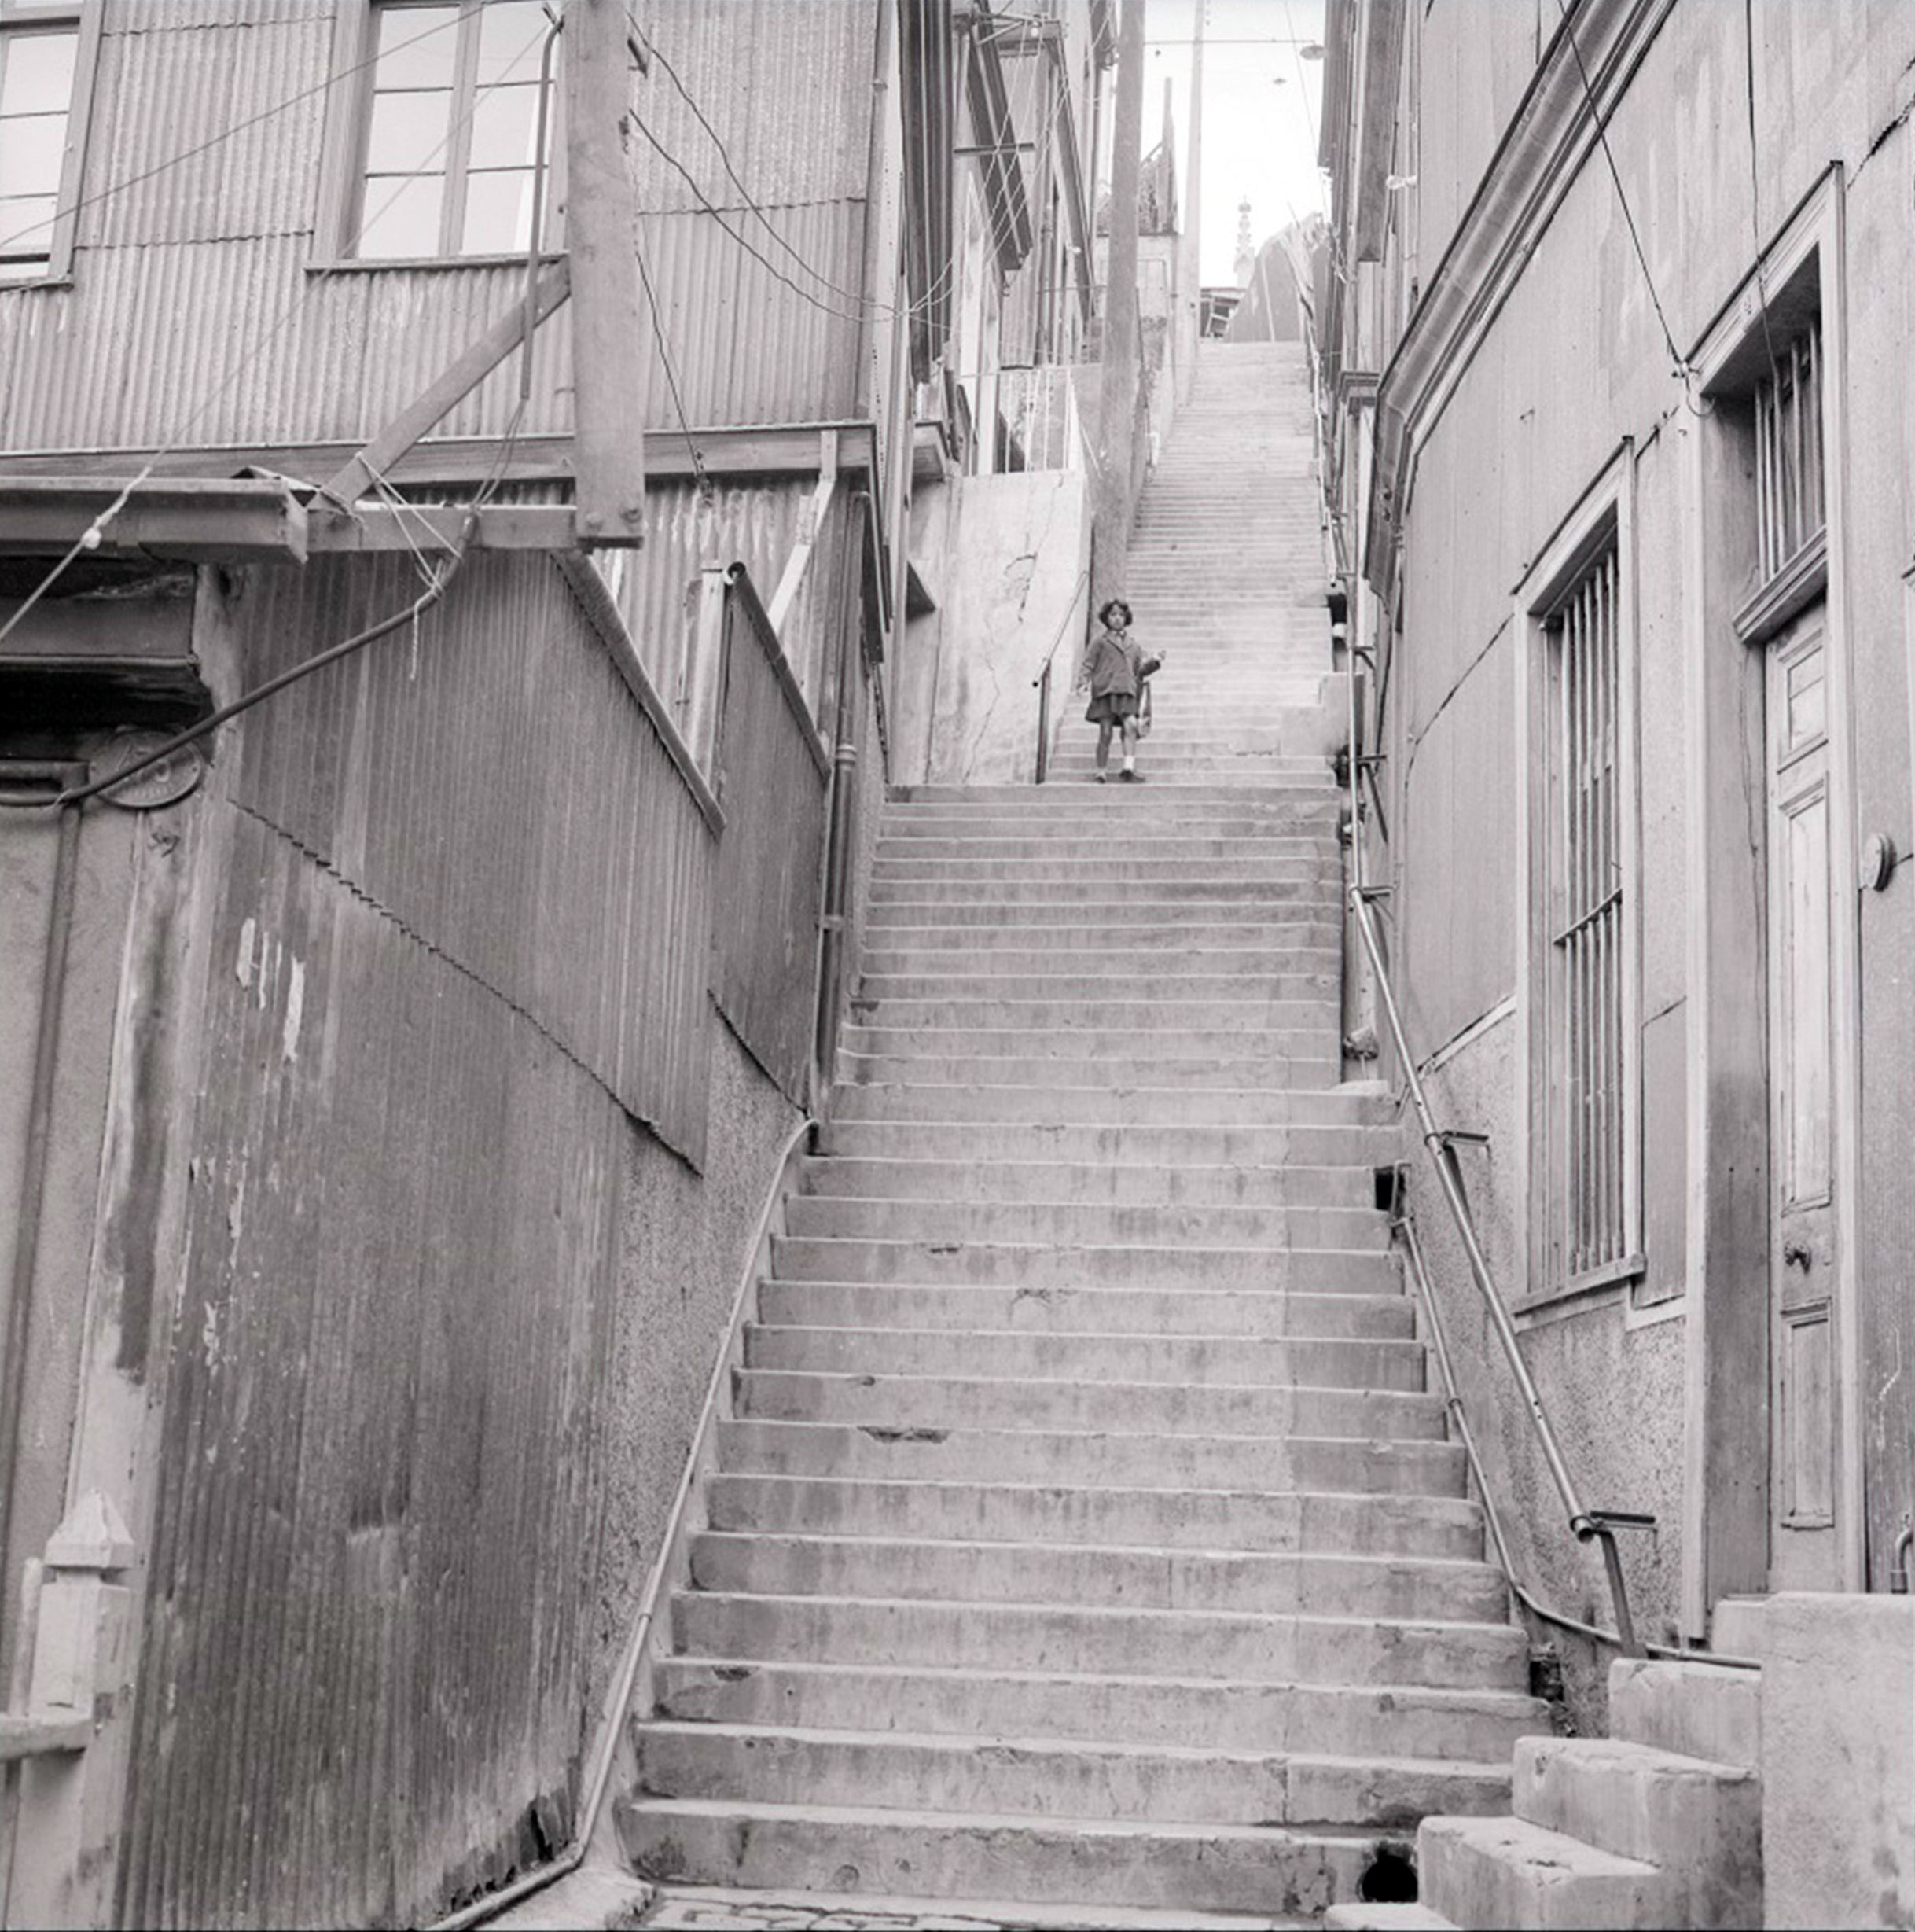 Enterreno - Fotos históricas de chile - fotos antiguas de Chile - Pasaje Morchio, Valparaíso, 1969